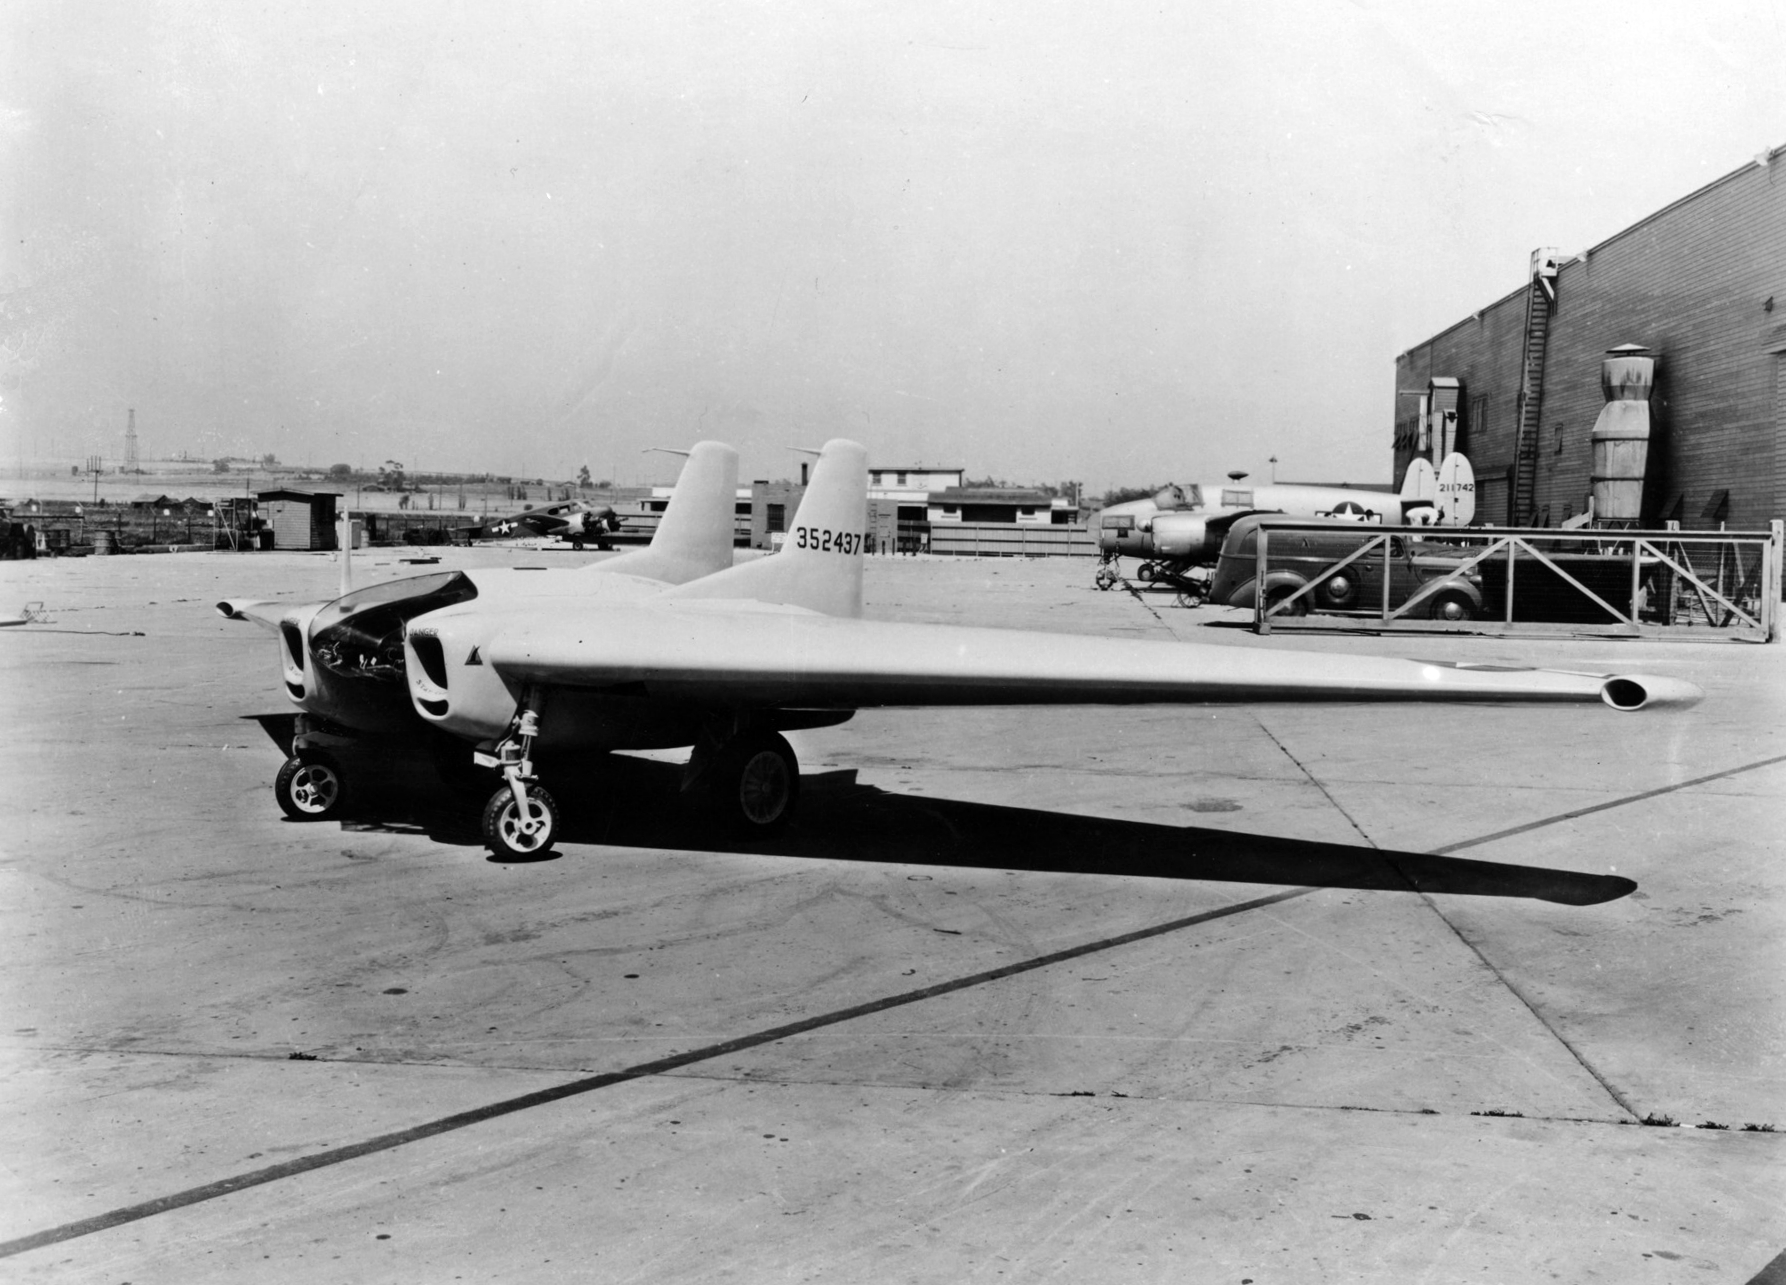 https://upload.wikimedia.org/wikipedia/commons/5/5e/Northrop_XP-79B_parked_1945.jpg